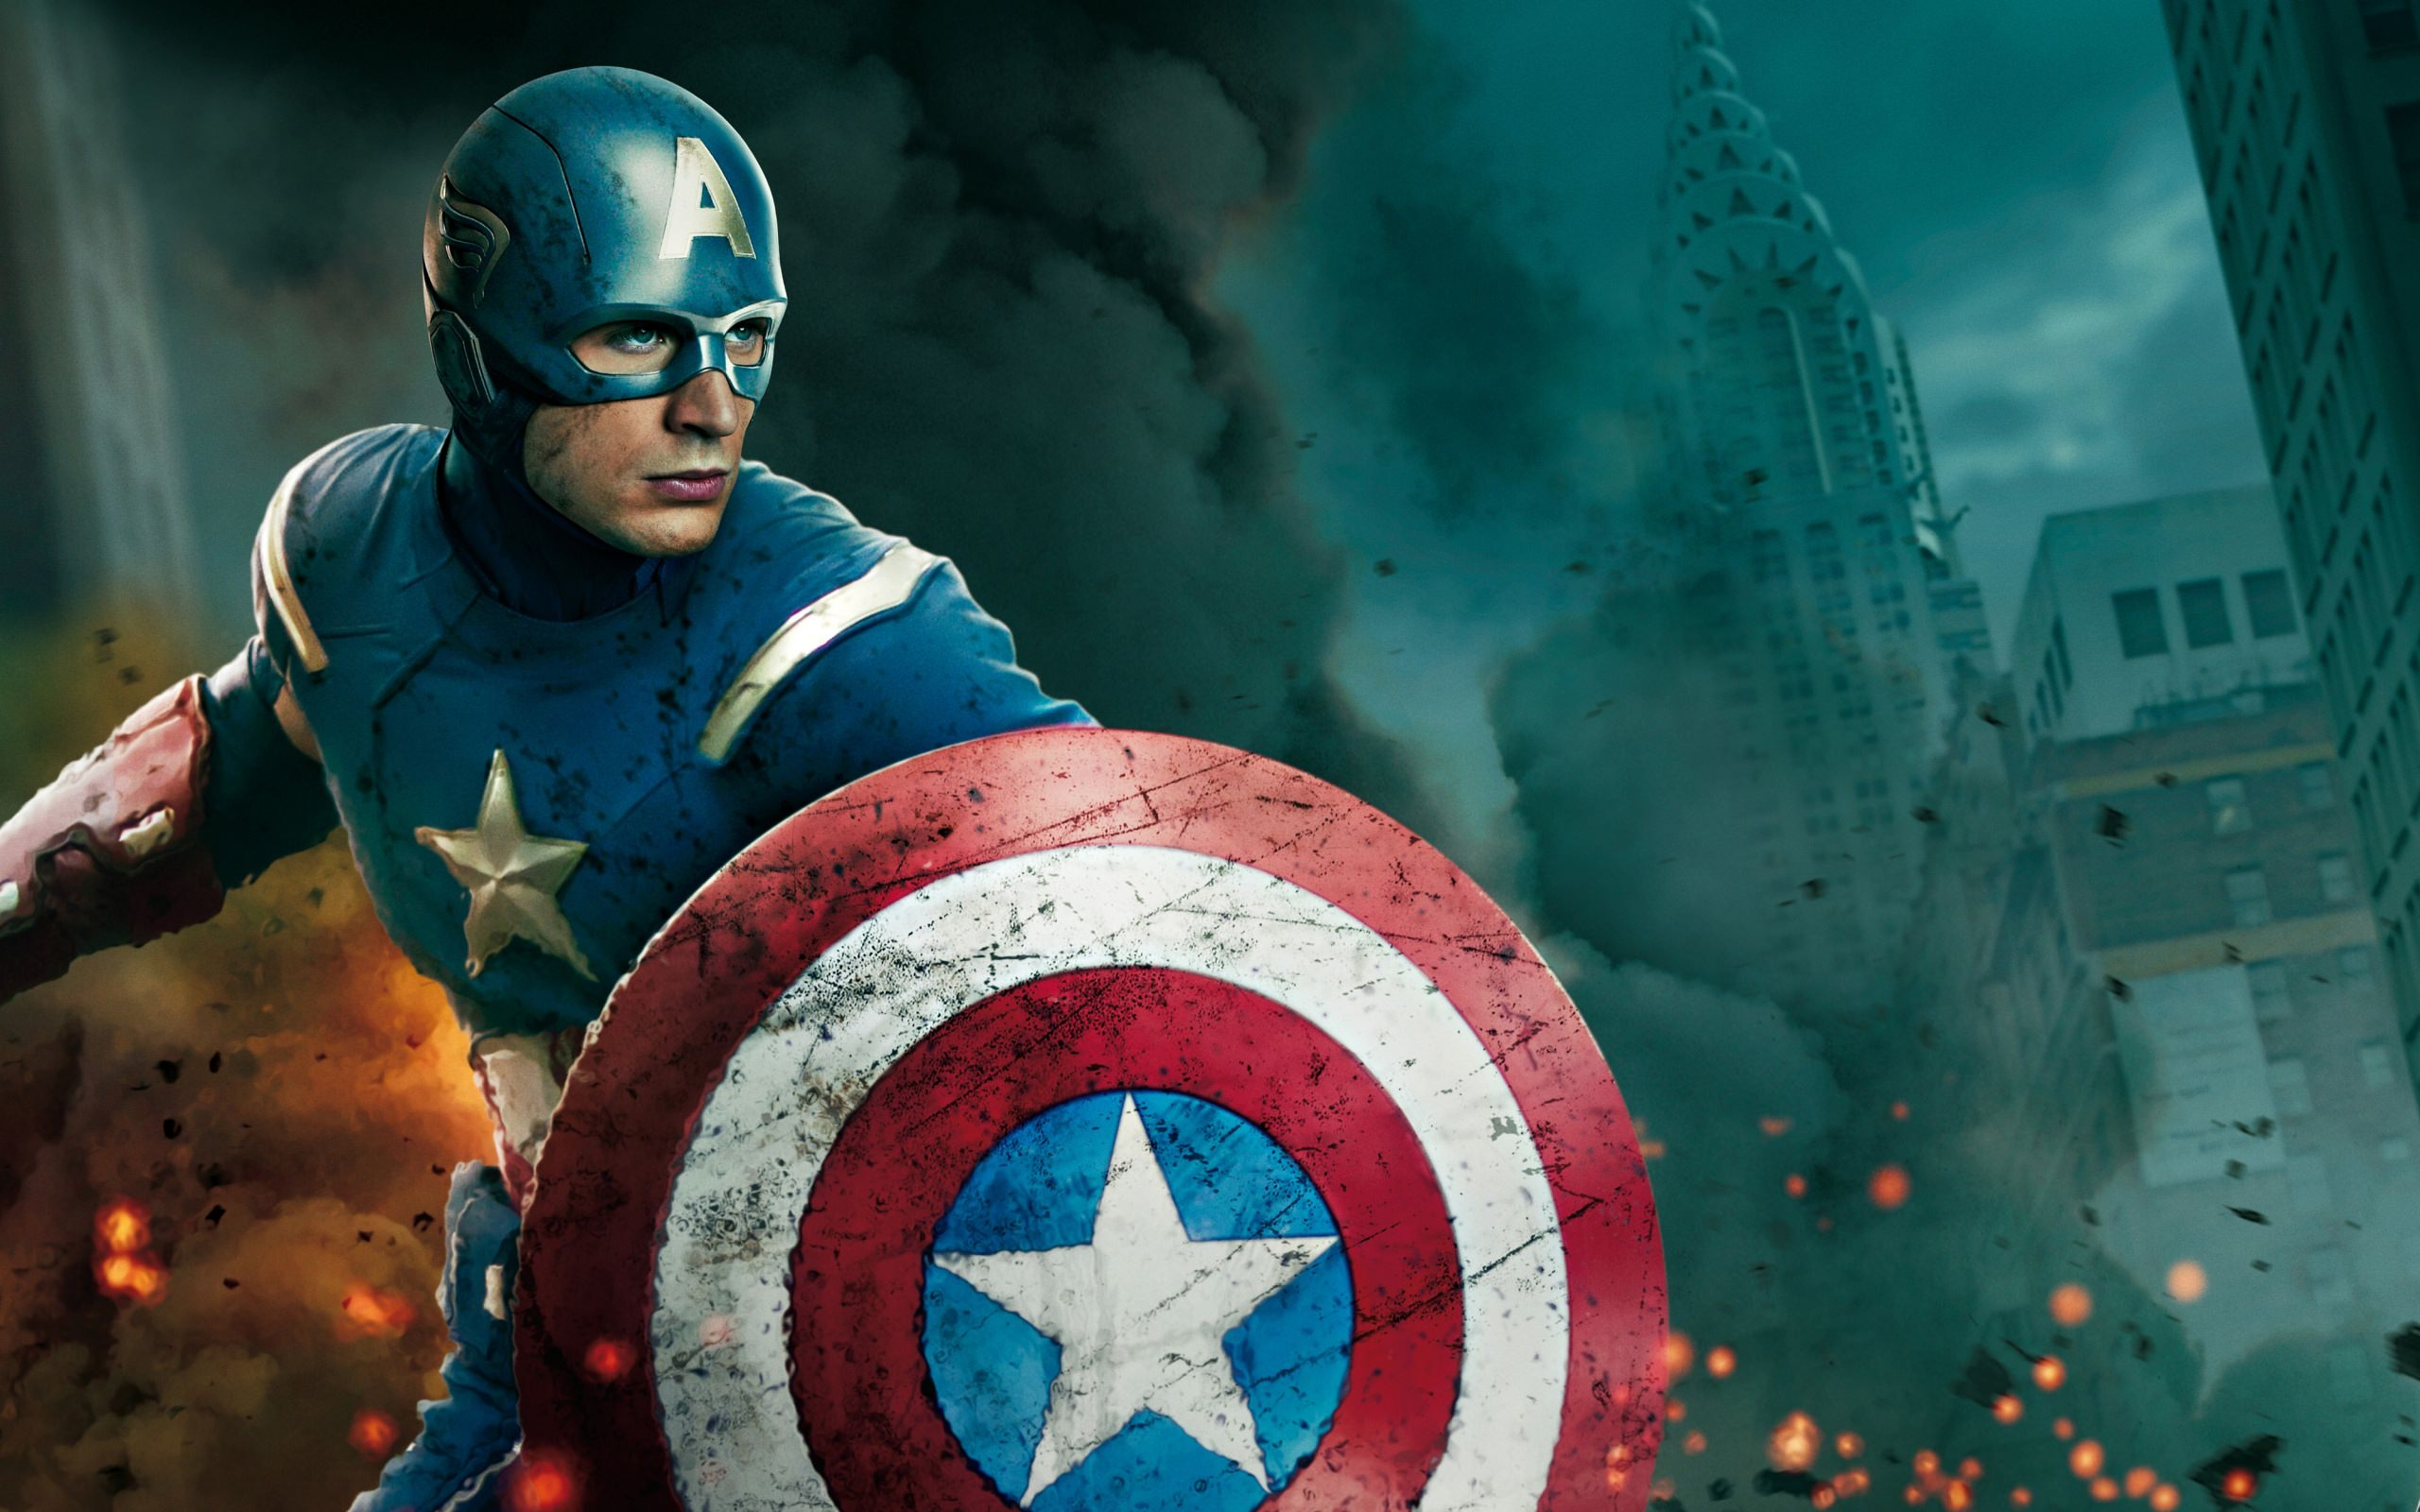 Captain America in War Wallpaper